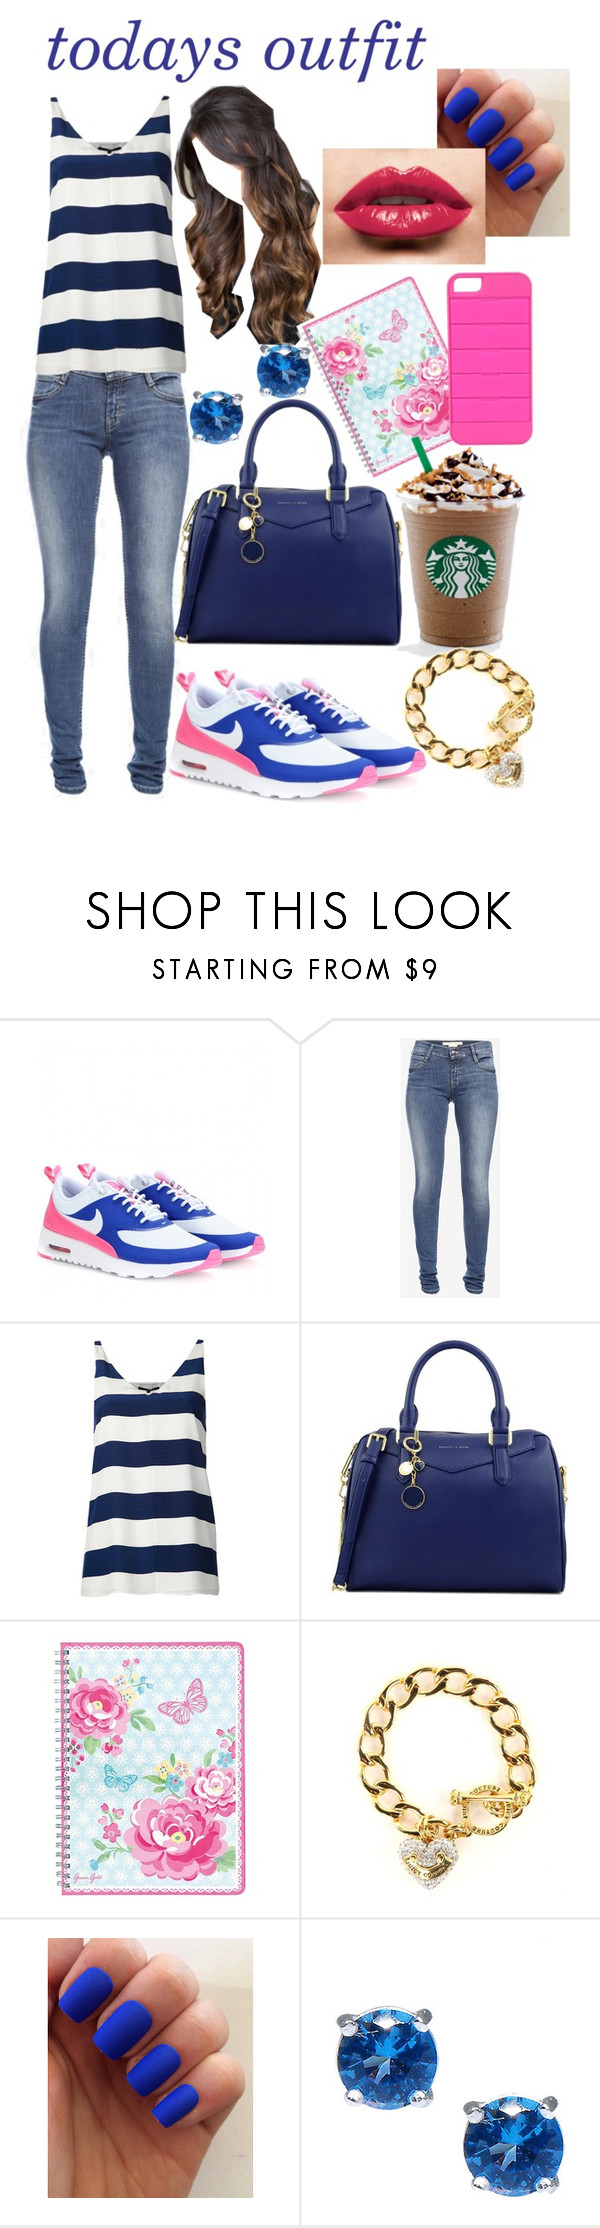 """""""todays outfit #4"""" by laurajessica ❤ liked on Polyvore featuring NIKE, French Connection, TIBI, CHARLES & KEITH, GreenGate, Juicy Couture, Moise and Triple C Designs"""